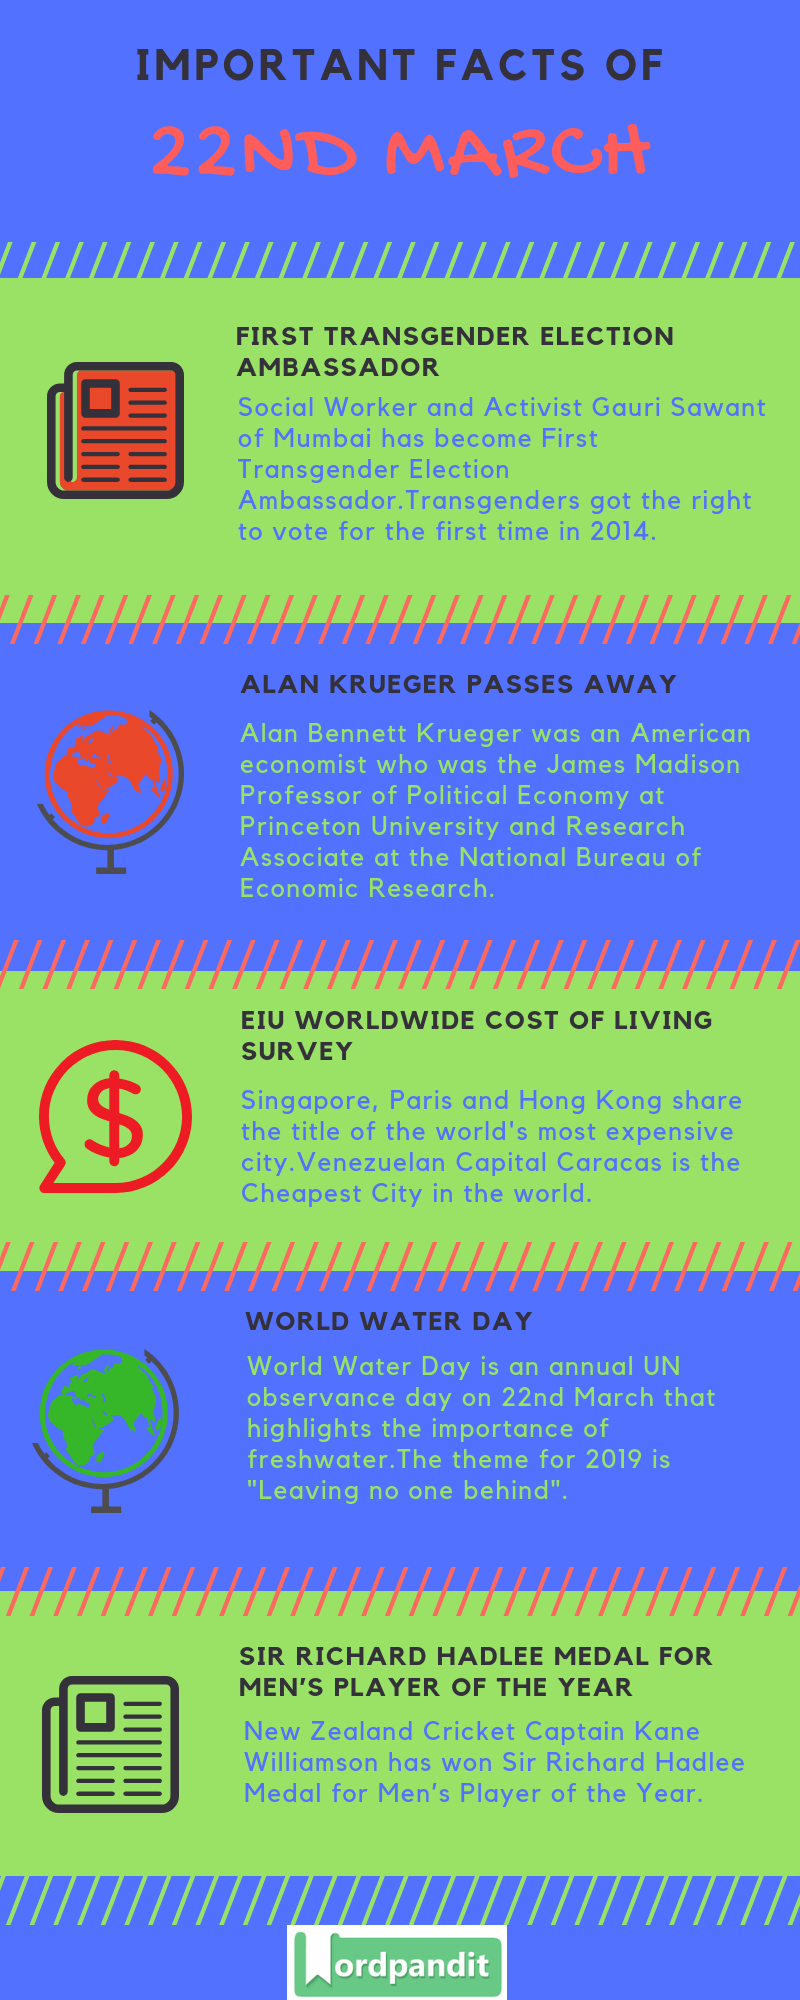 Daily Current Affairs 22 March 2019 Current Affairs Quiz 22 March 2019 Current Affairs Infographic